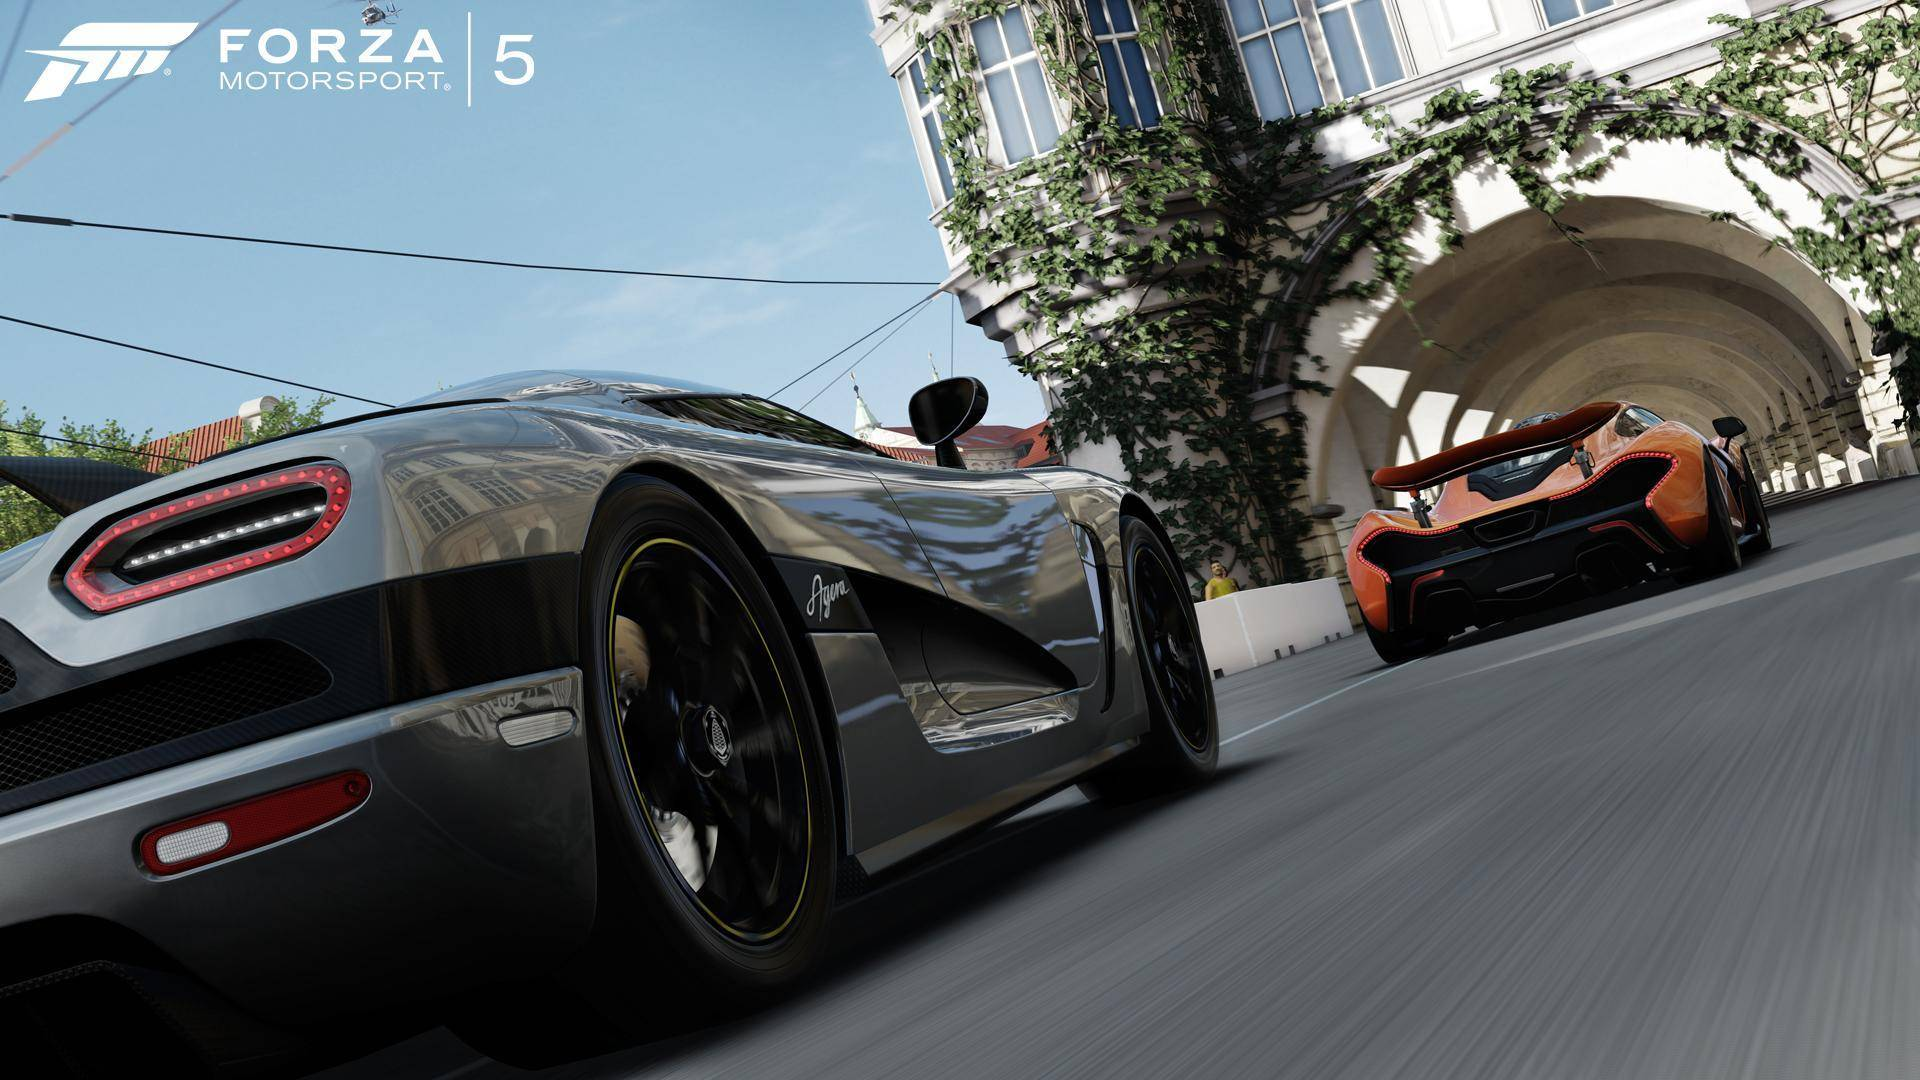 buy forza motorsport 5 xbox one compare prices. Black Bedroom Furniture Sets. Home Design Ideas